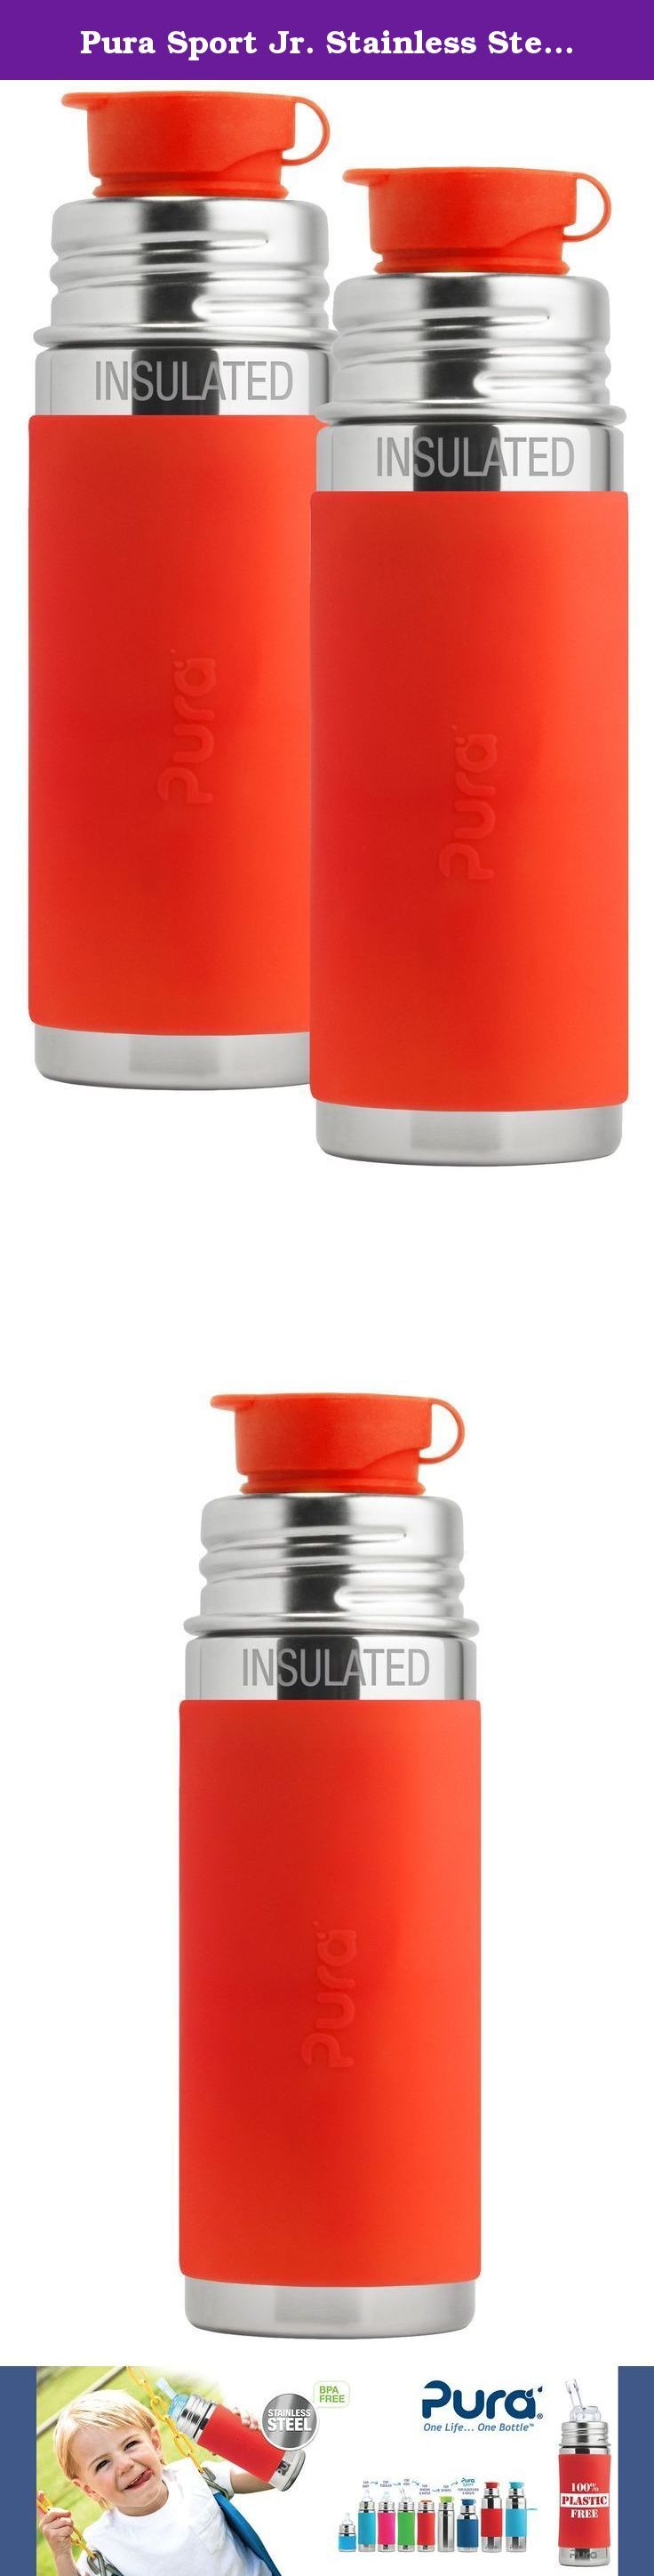 Pura Sport Jr. Stainless Steel Vacuum Insulated Bottle, 9 Ounce, Set of 2, Orange. Our development team took up the challenge of creating the first (and only) 100% plastic-free sport bottles in the world. Like all bottles in the Pura Sport collection, the Pura INSULATED Jr Sport Bottle features a double-wall vacuum insulated Food Grade Stainless Steel bottle (18/8), Medical Grade Silicone components, and zero plastic parts! Each bottle features our patented, medical grade silicone Big…